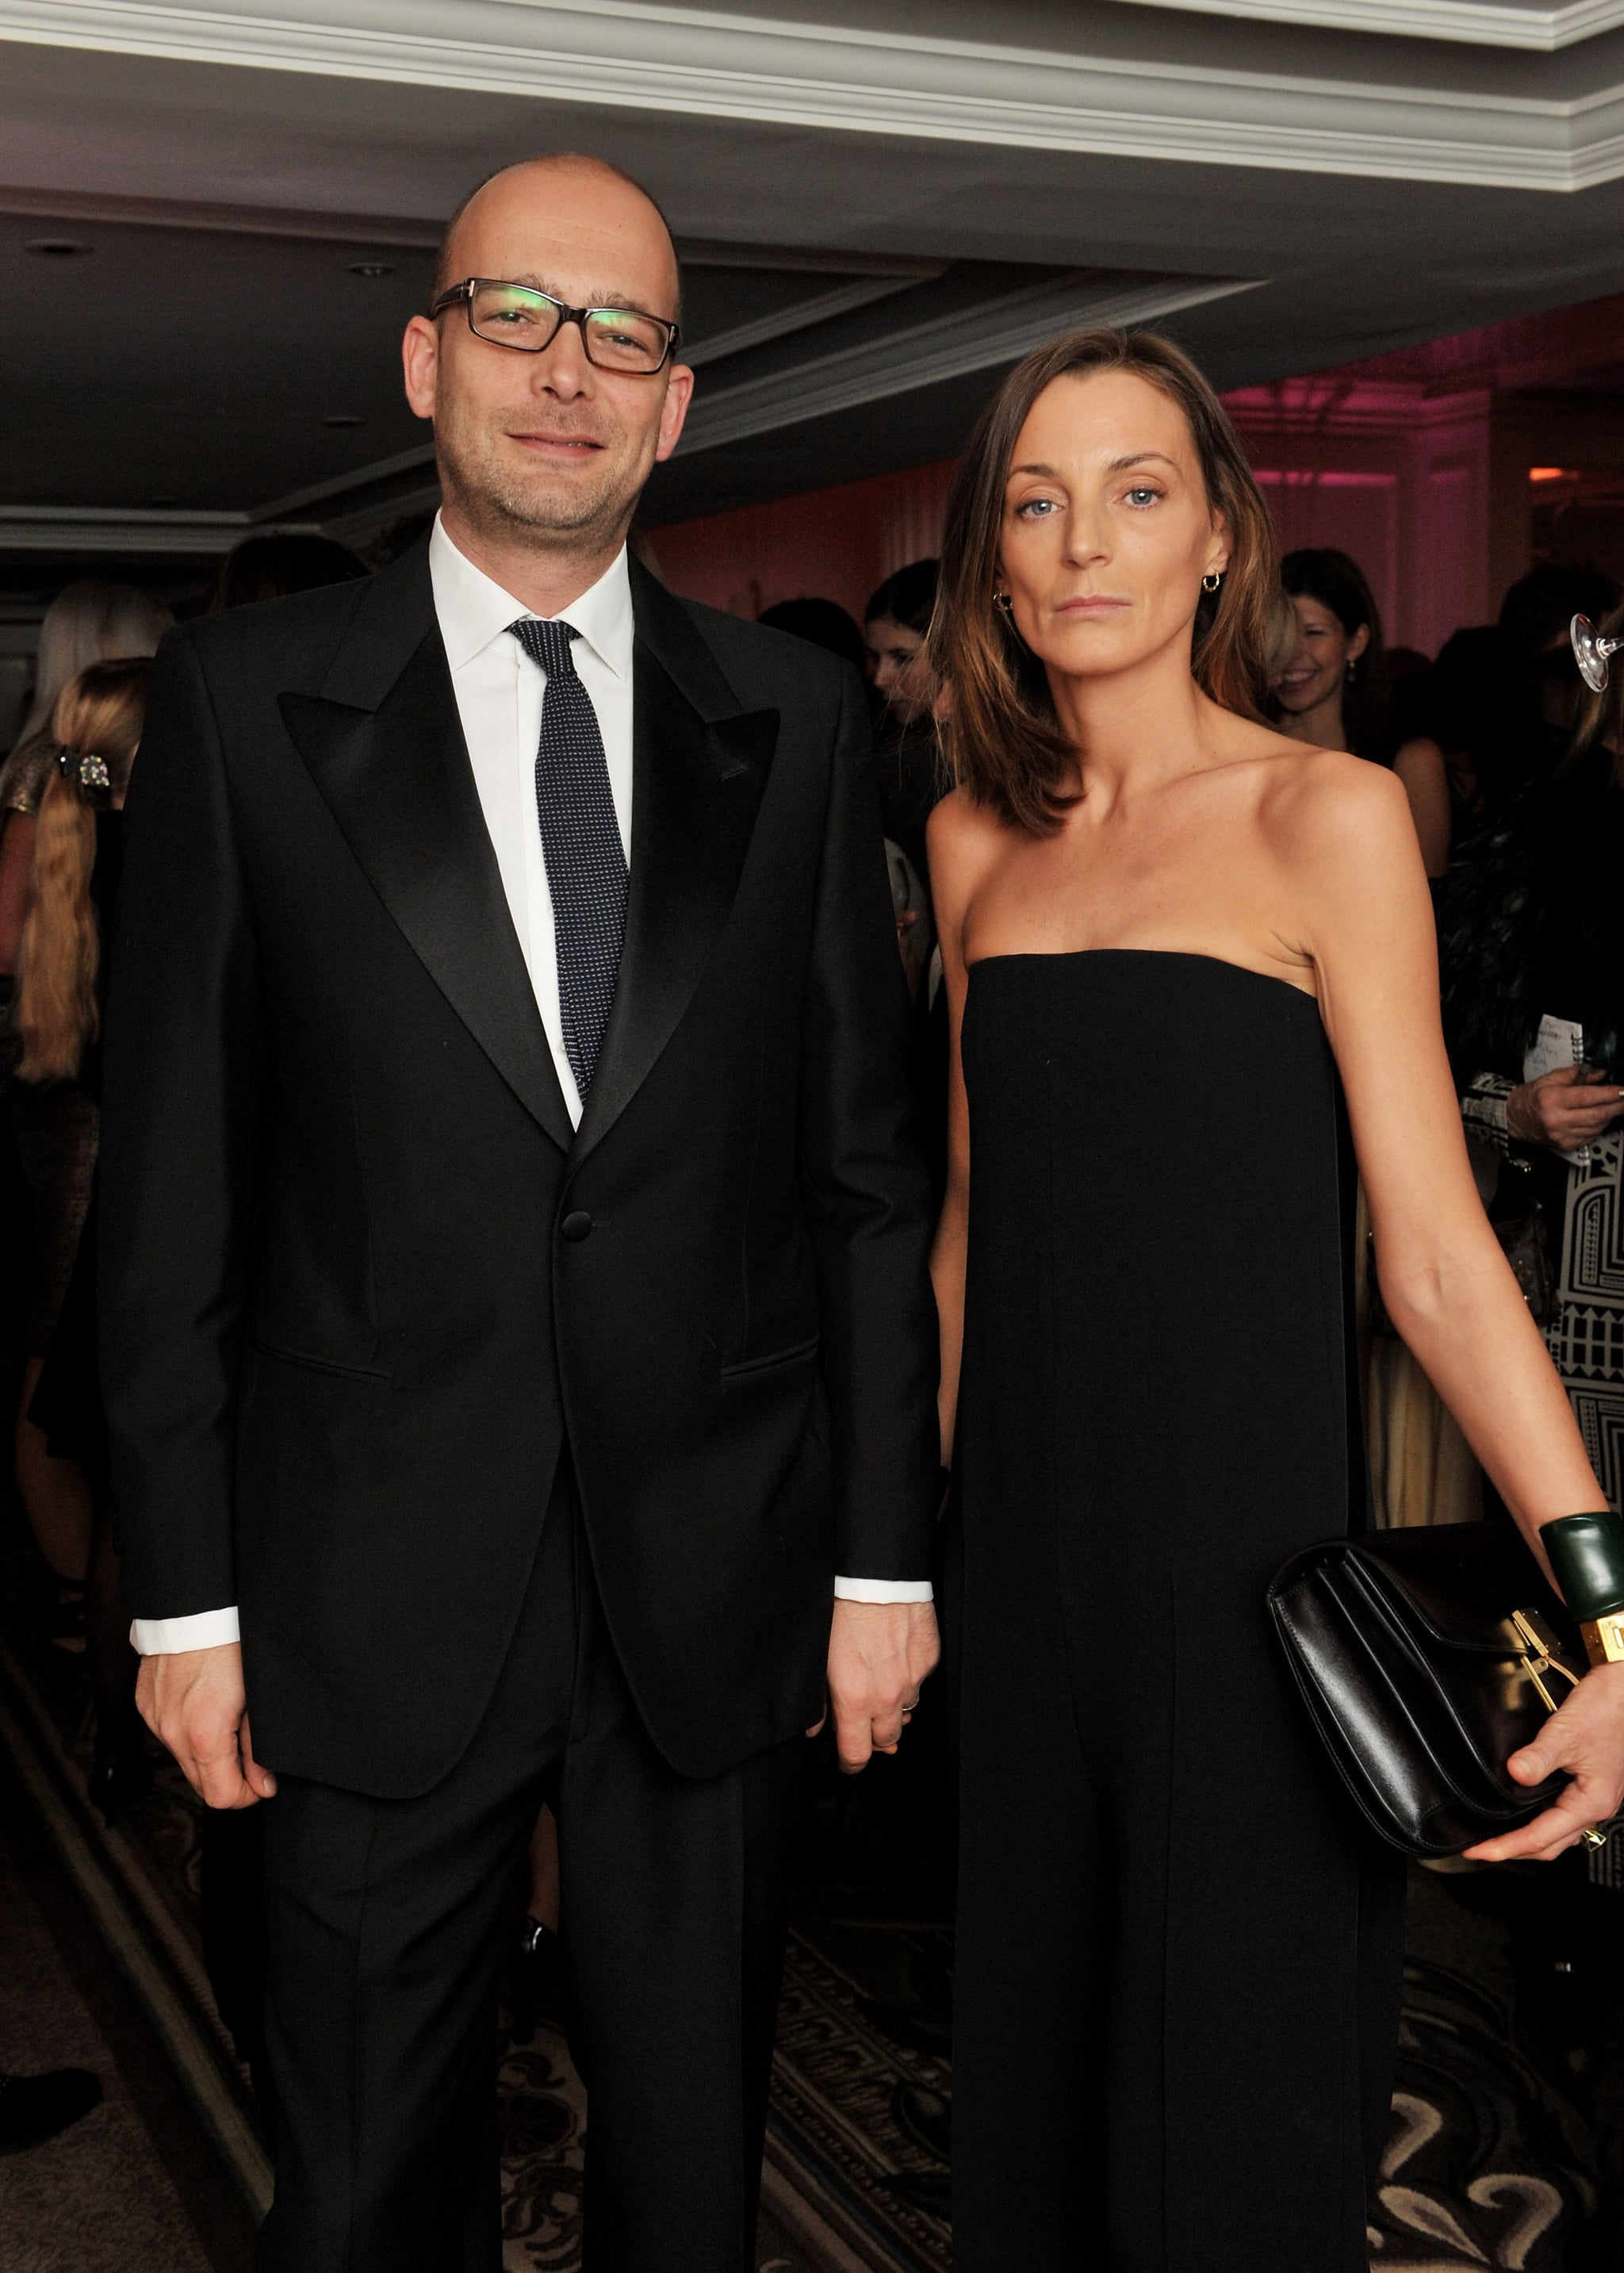 Phoebe Philo with friendly, fun, Husband Max Wigram